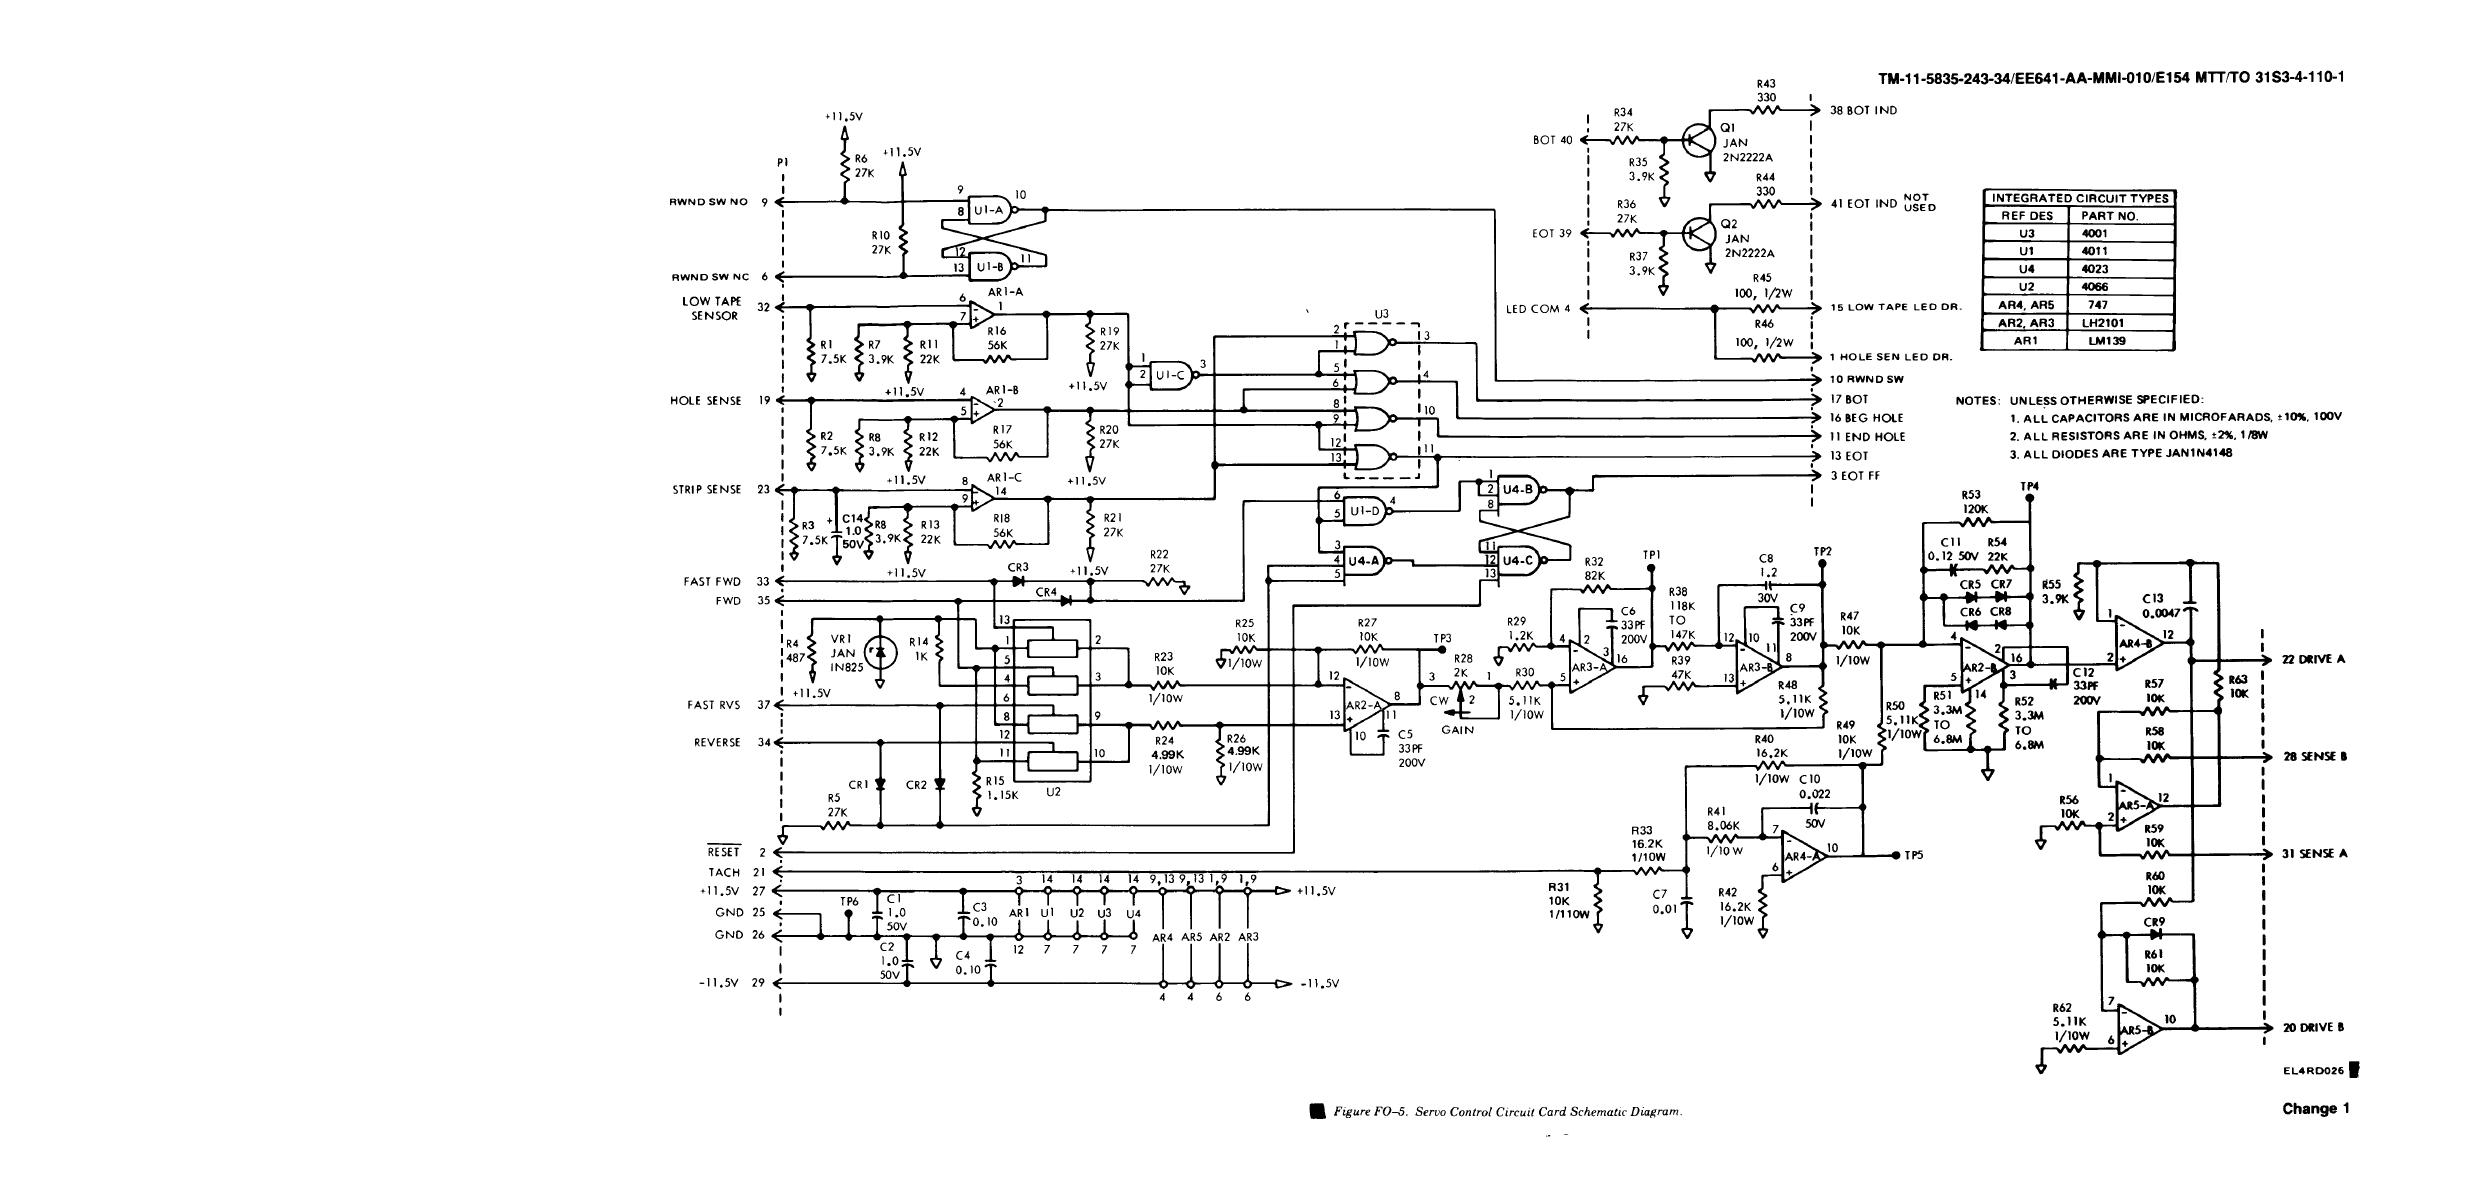 Gt Circuits Gt Servo Control Circuit Card Schematic Diagram